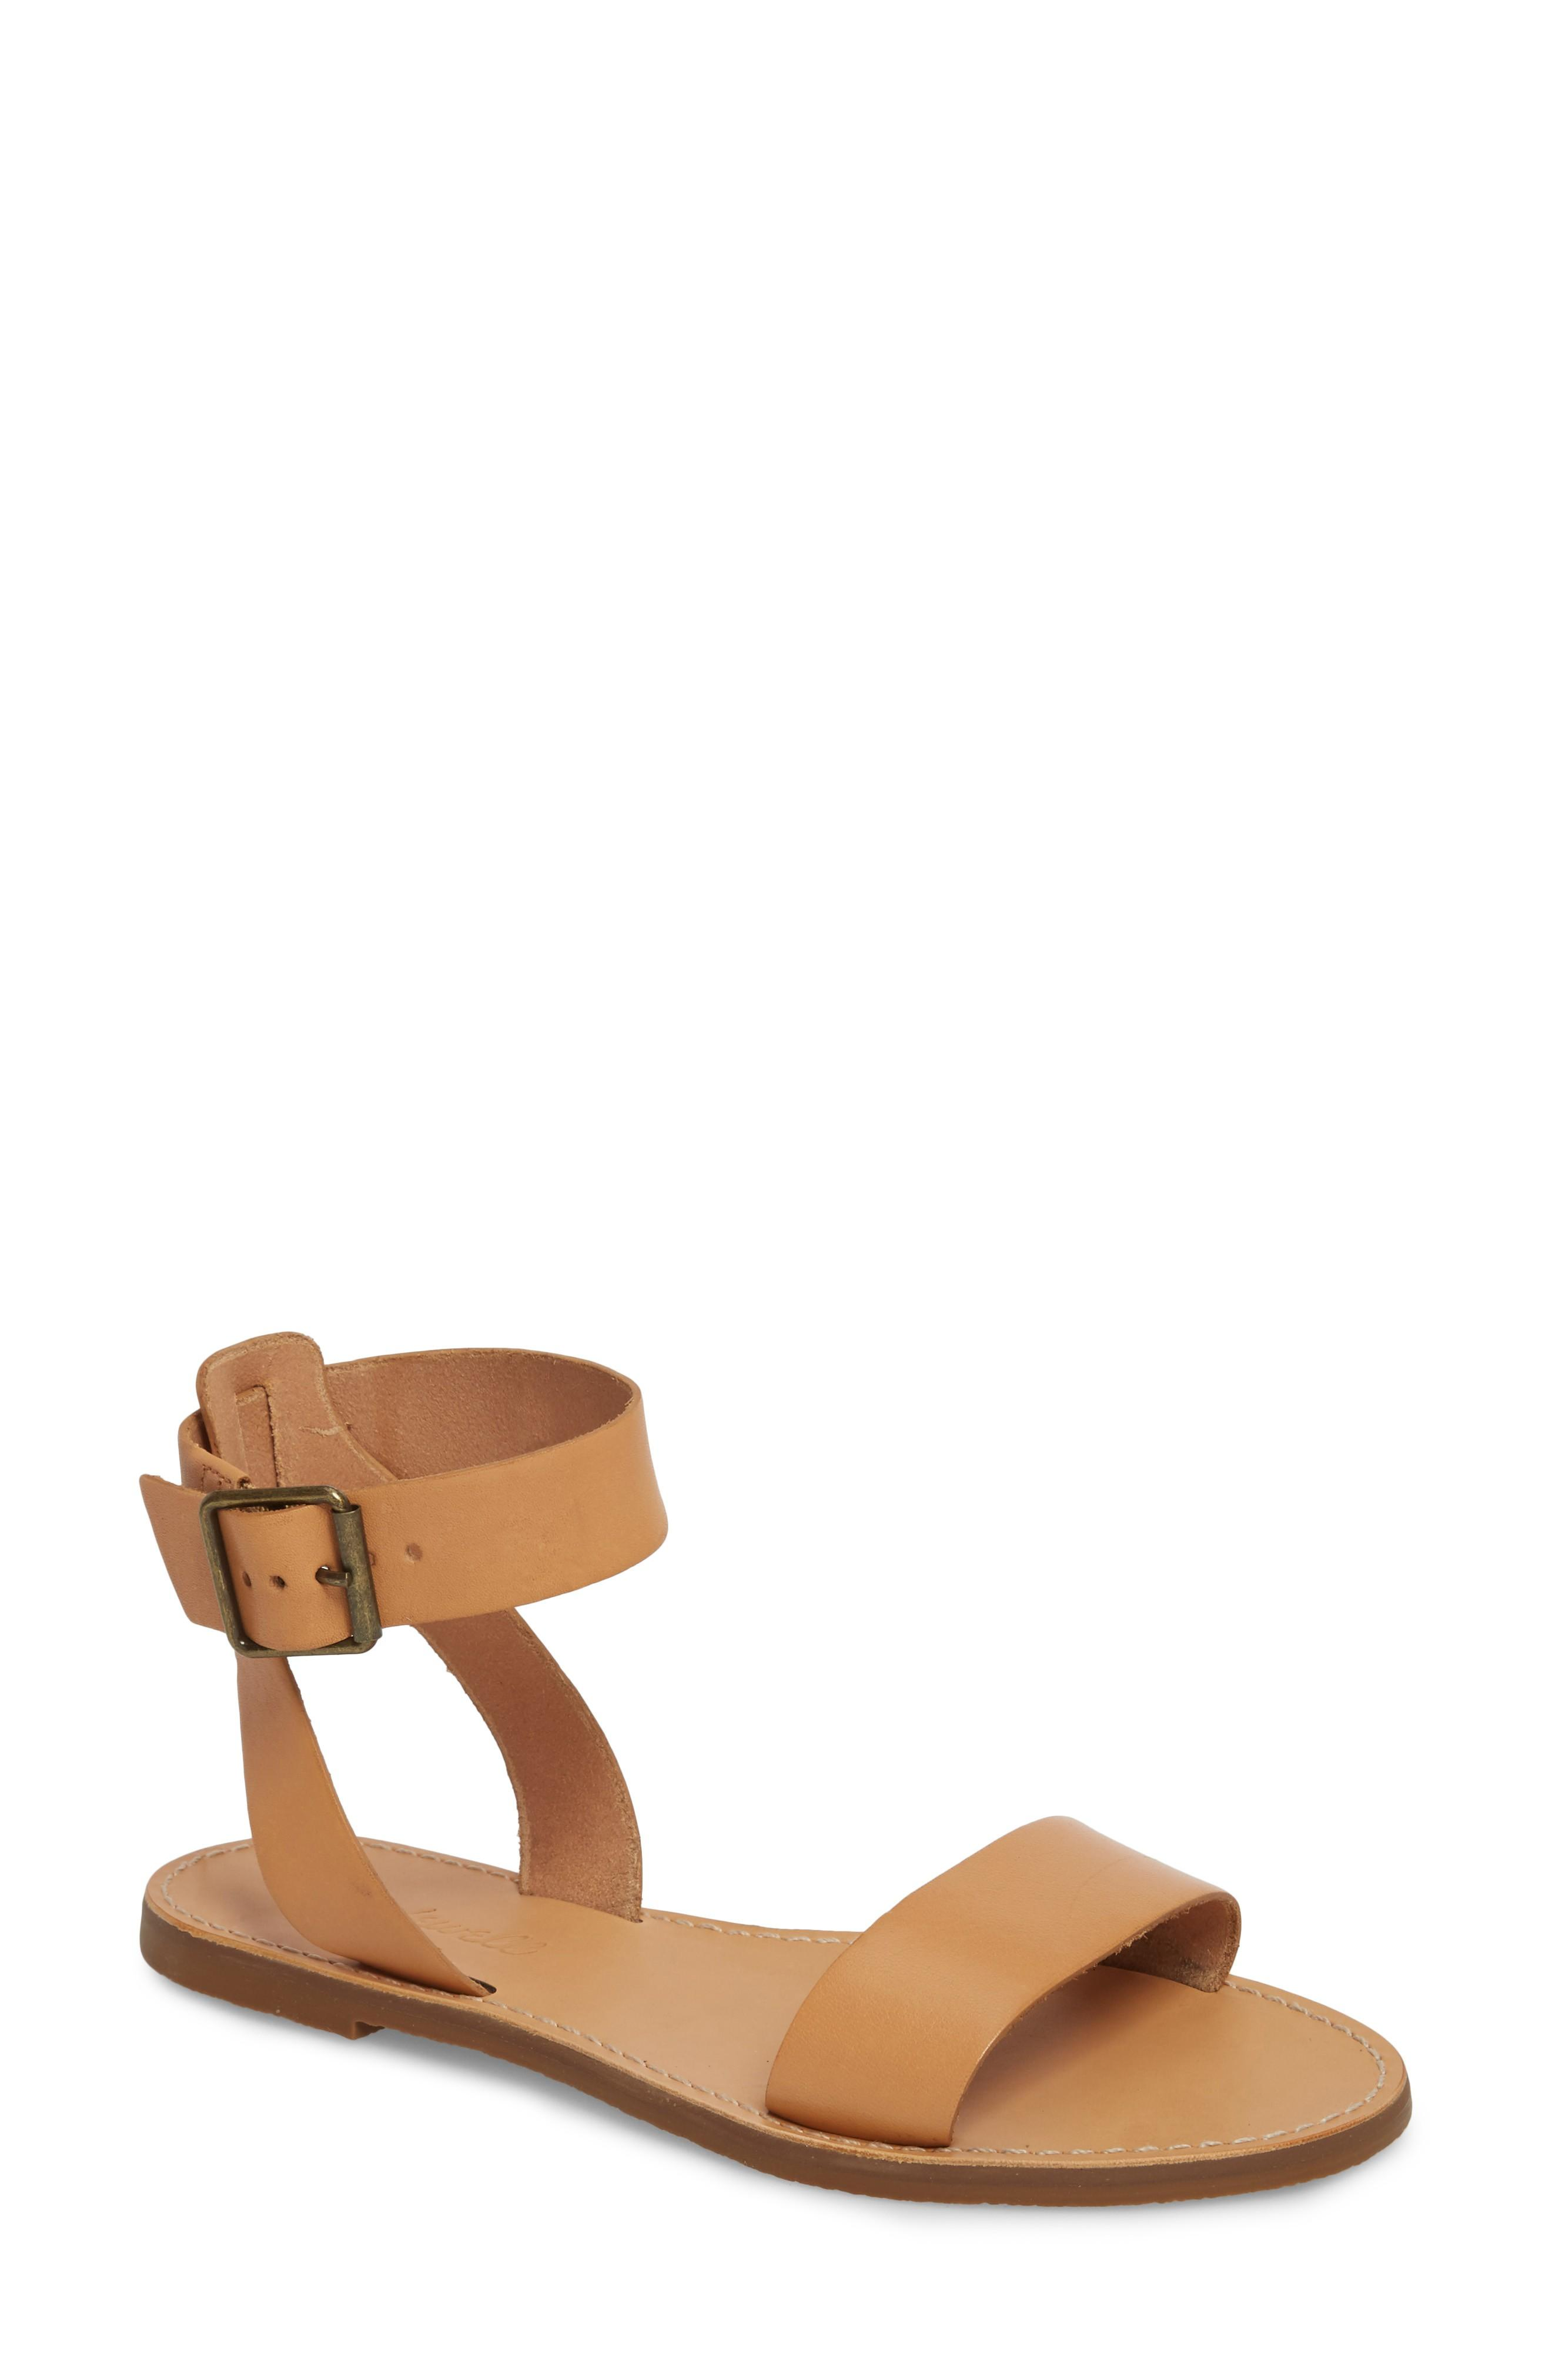 9df55d7917b Madewell The Boardwalk Ankle Strap Sandal In Natural Buff Leather ...